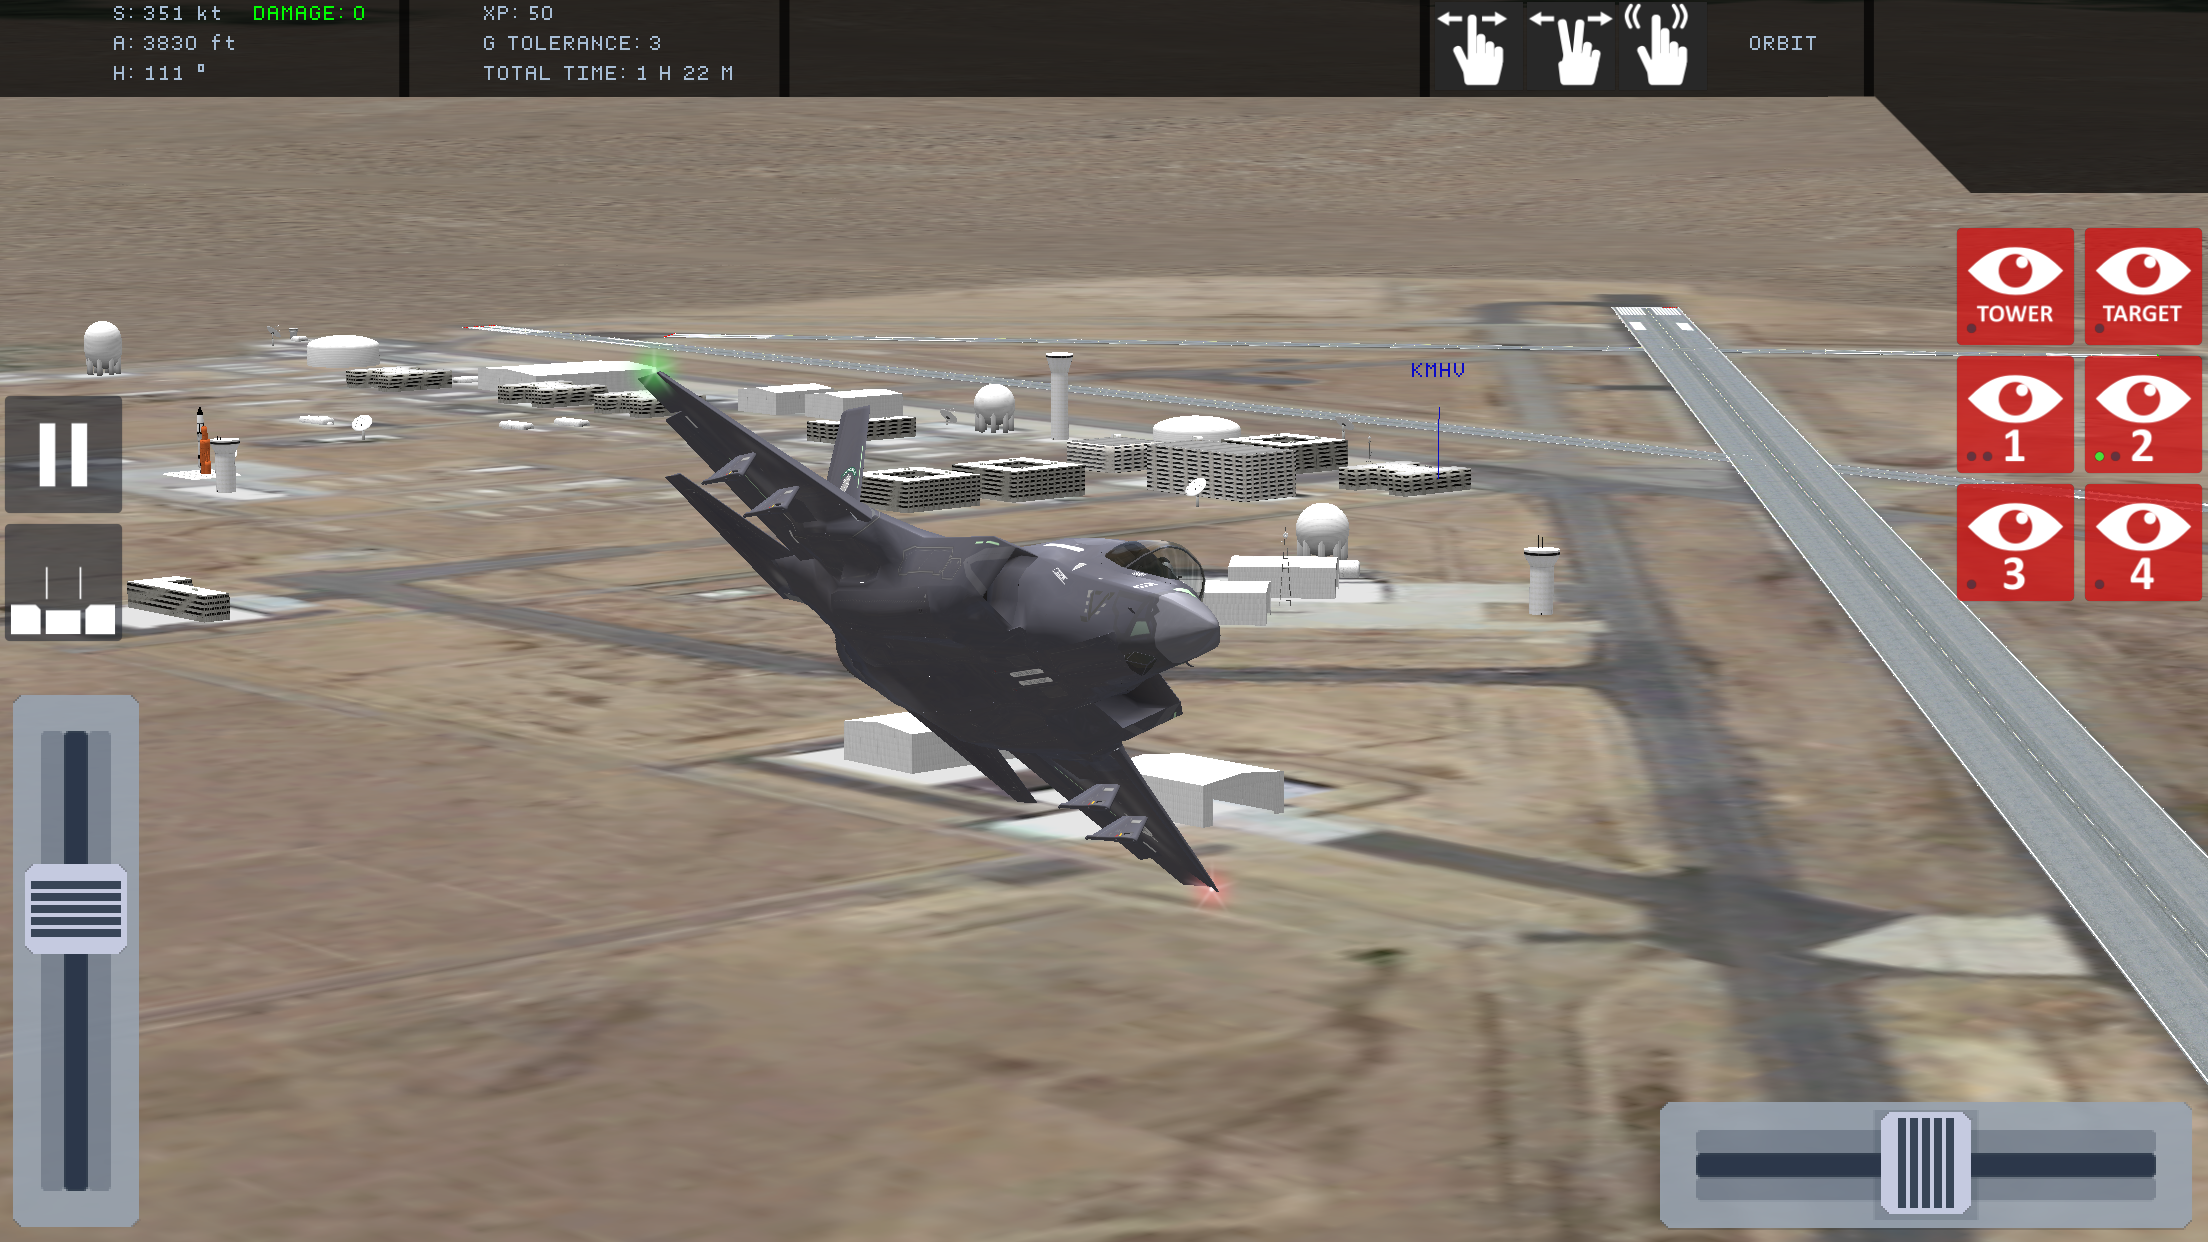 Special Air Wing for iOS / Client: Simception ltd / UK – H-SIM